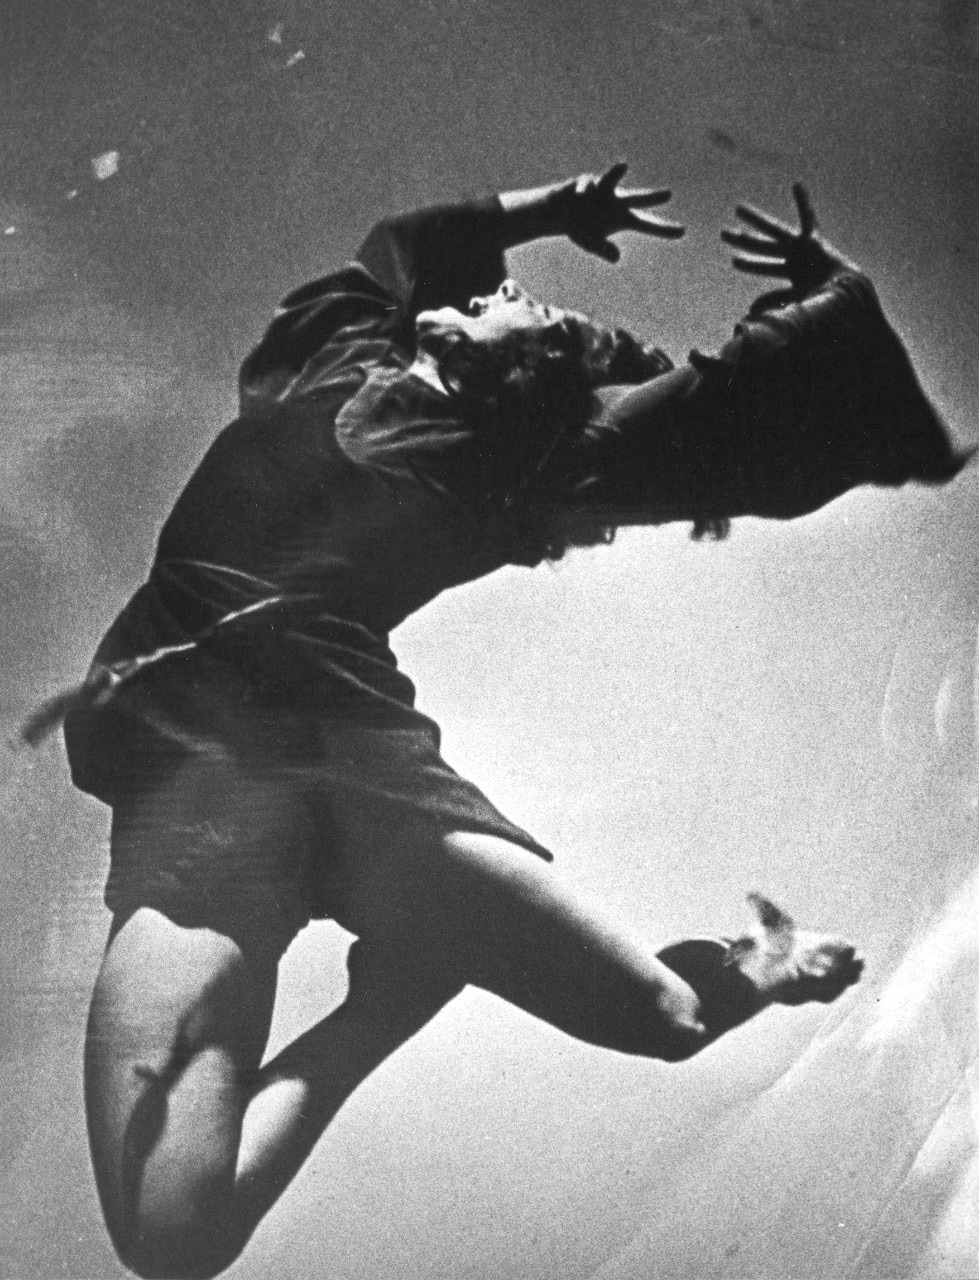 Dancer Shona Dunlop as Cain for the Bodenwieser Ballet's production of Cain and Abel, produced and performed in the Verbrugghen Hall of the Sydney Conservatorium of Music in 1940.